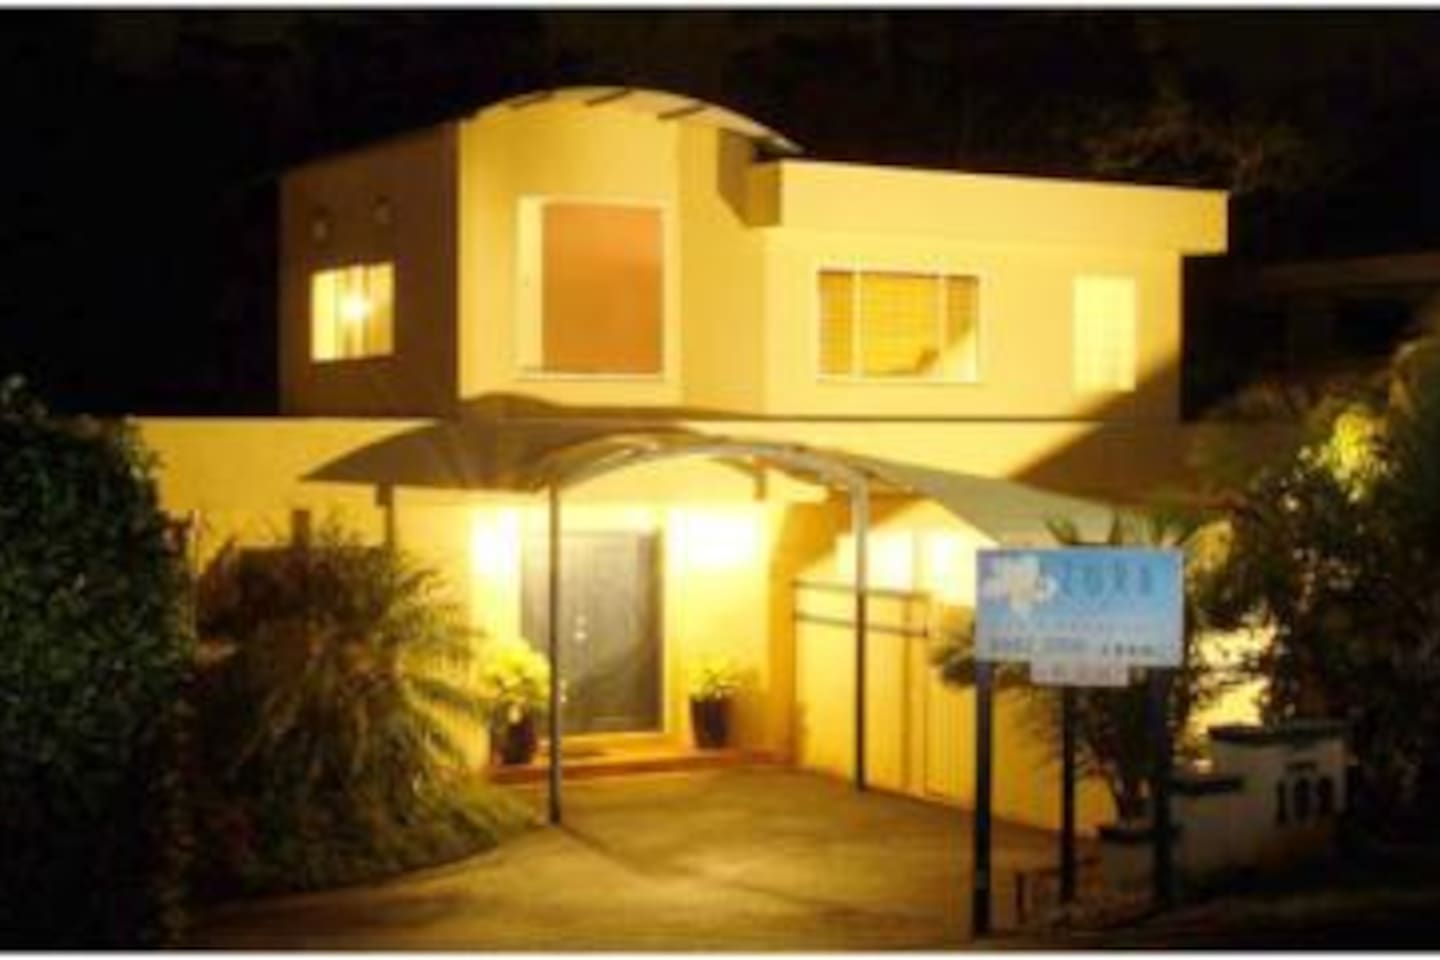 The Front of our B&B and home (4.5 star accredited rating) by- Star ratings Australia